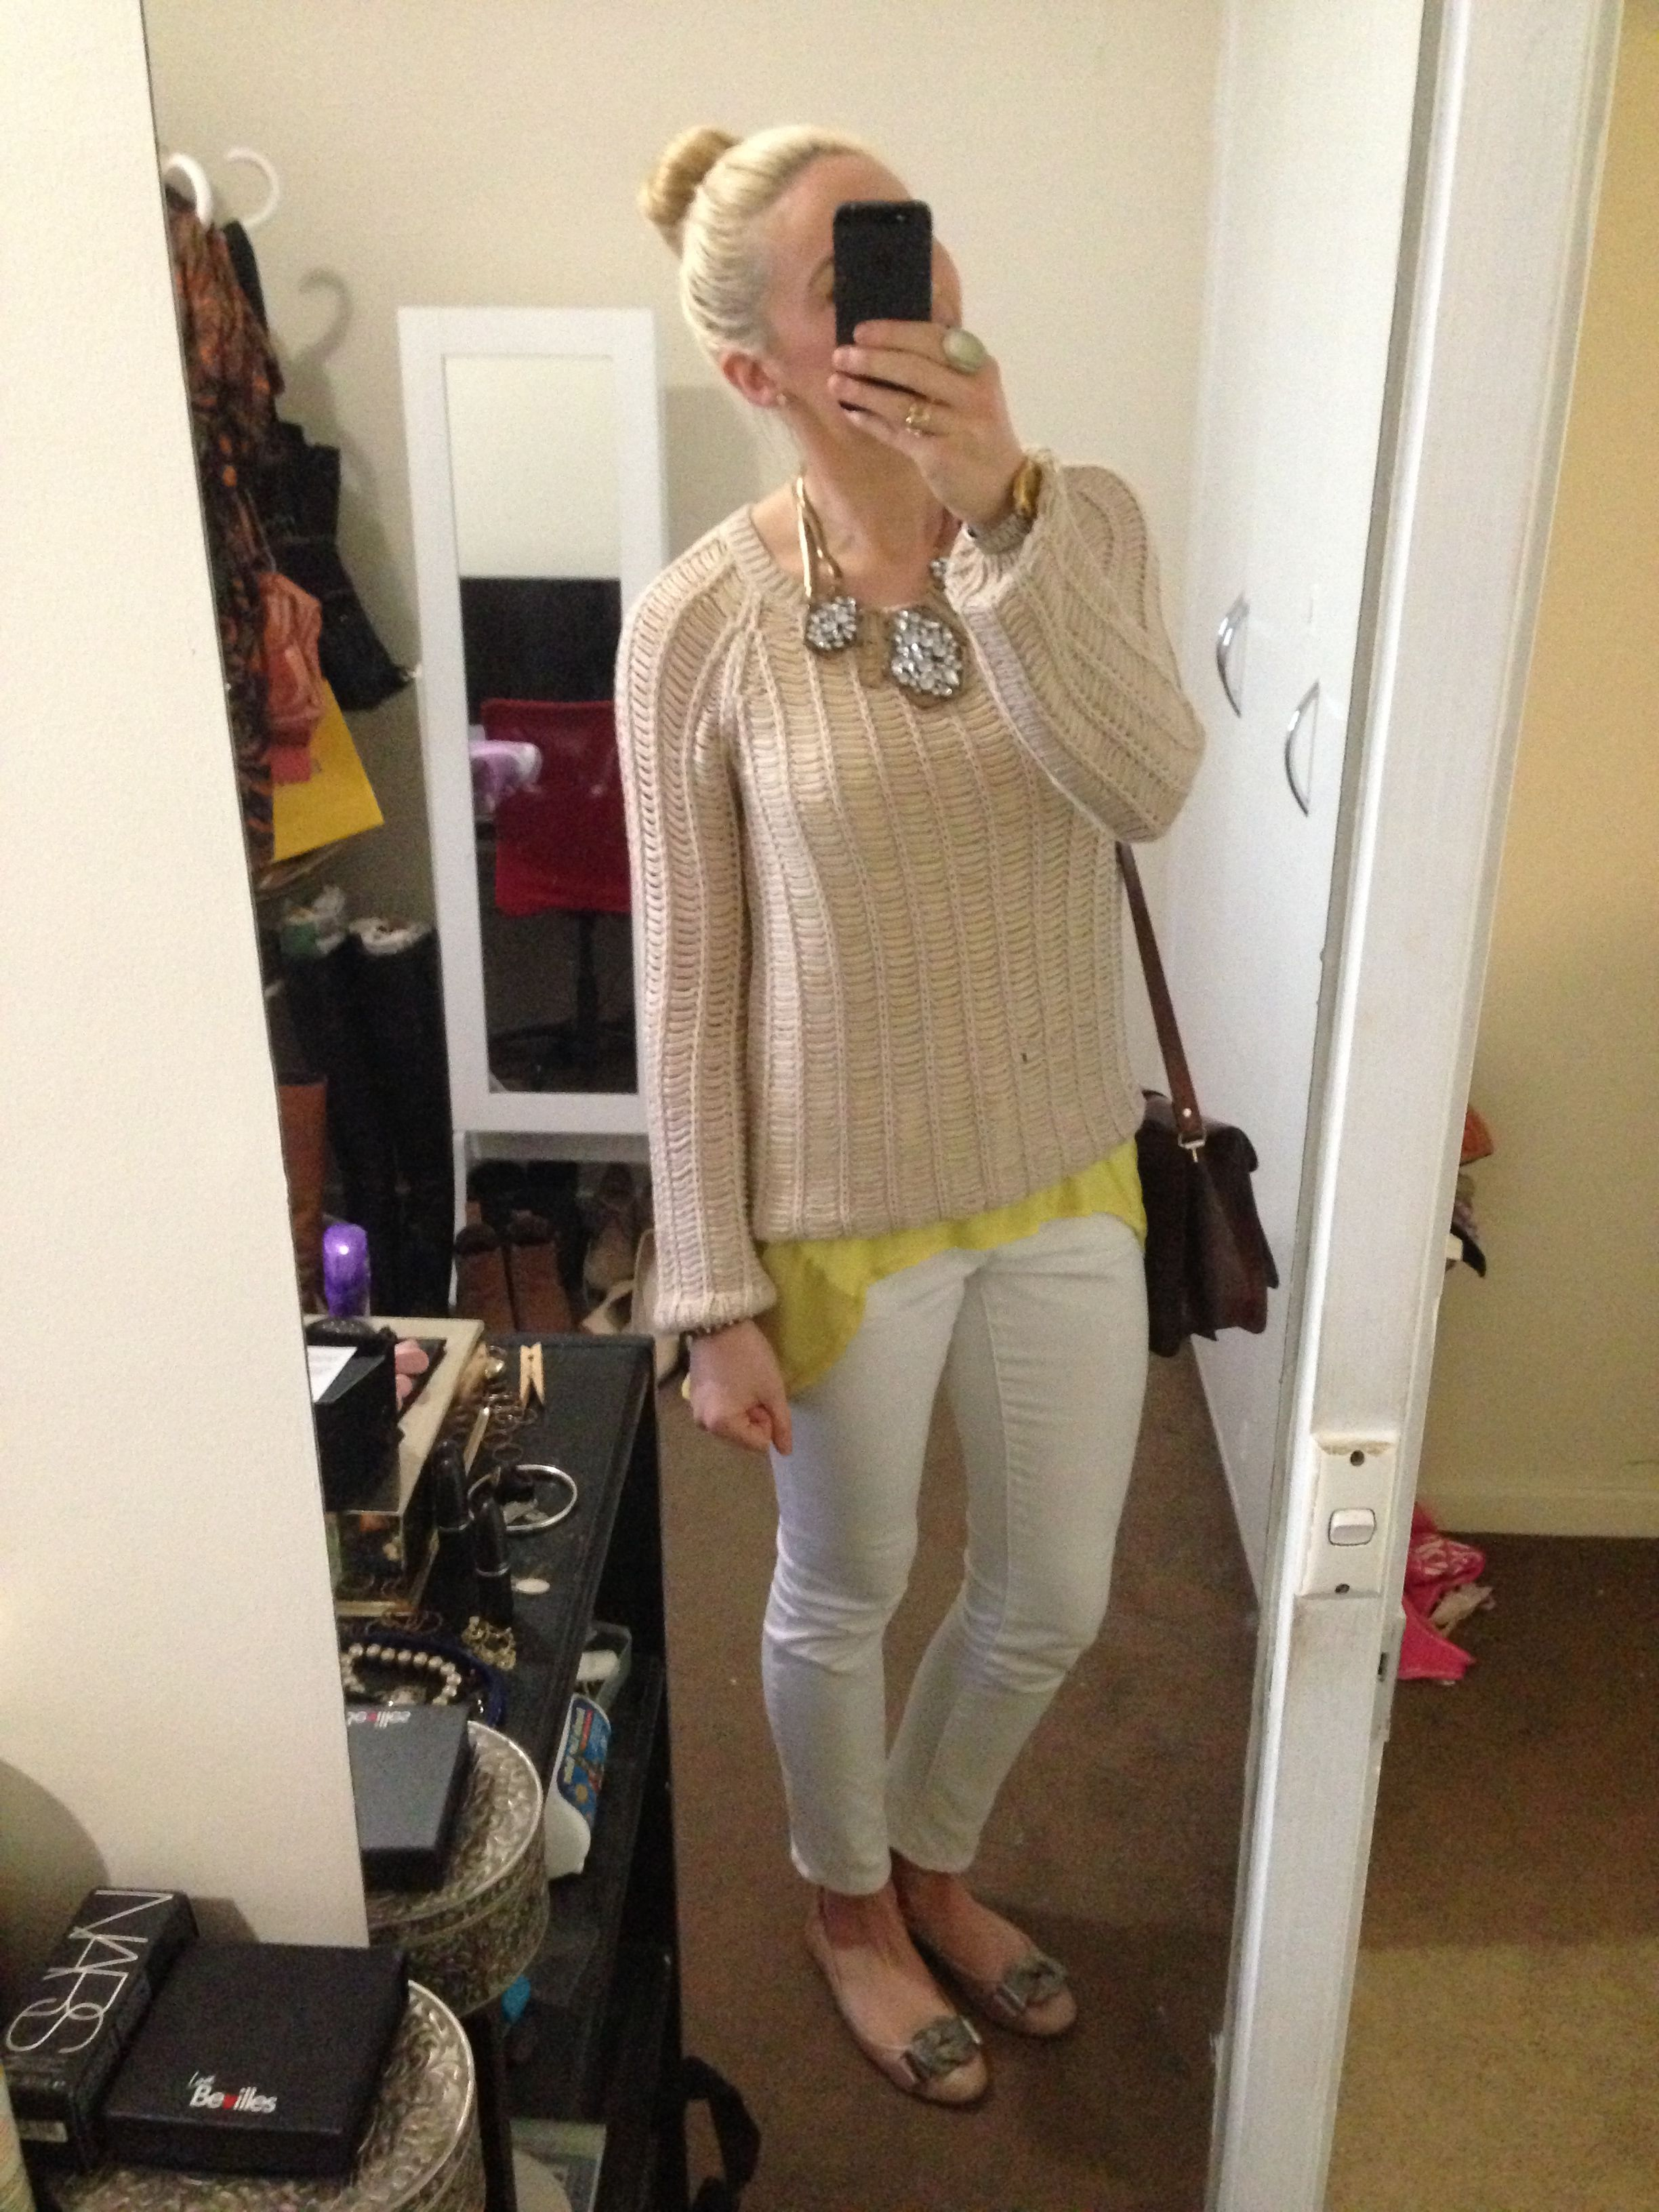 Style: Sportsgirl knitted jumper, yellow tank top, white Target jeans and Tony Bianco ballet flats